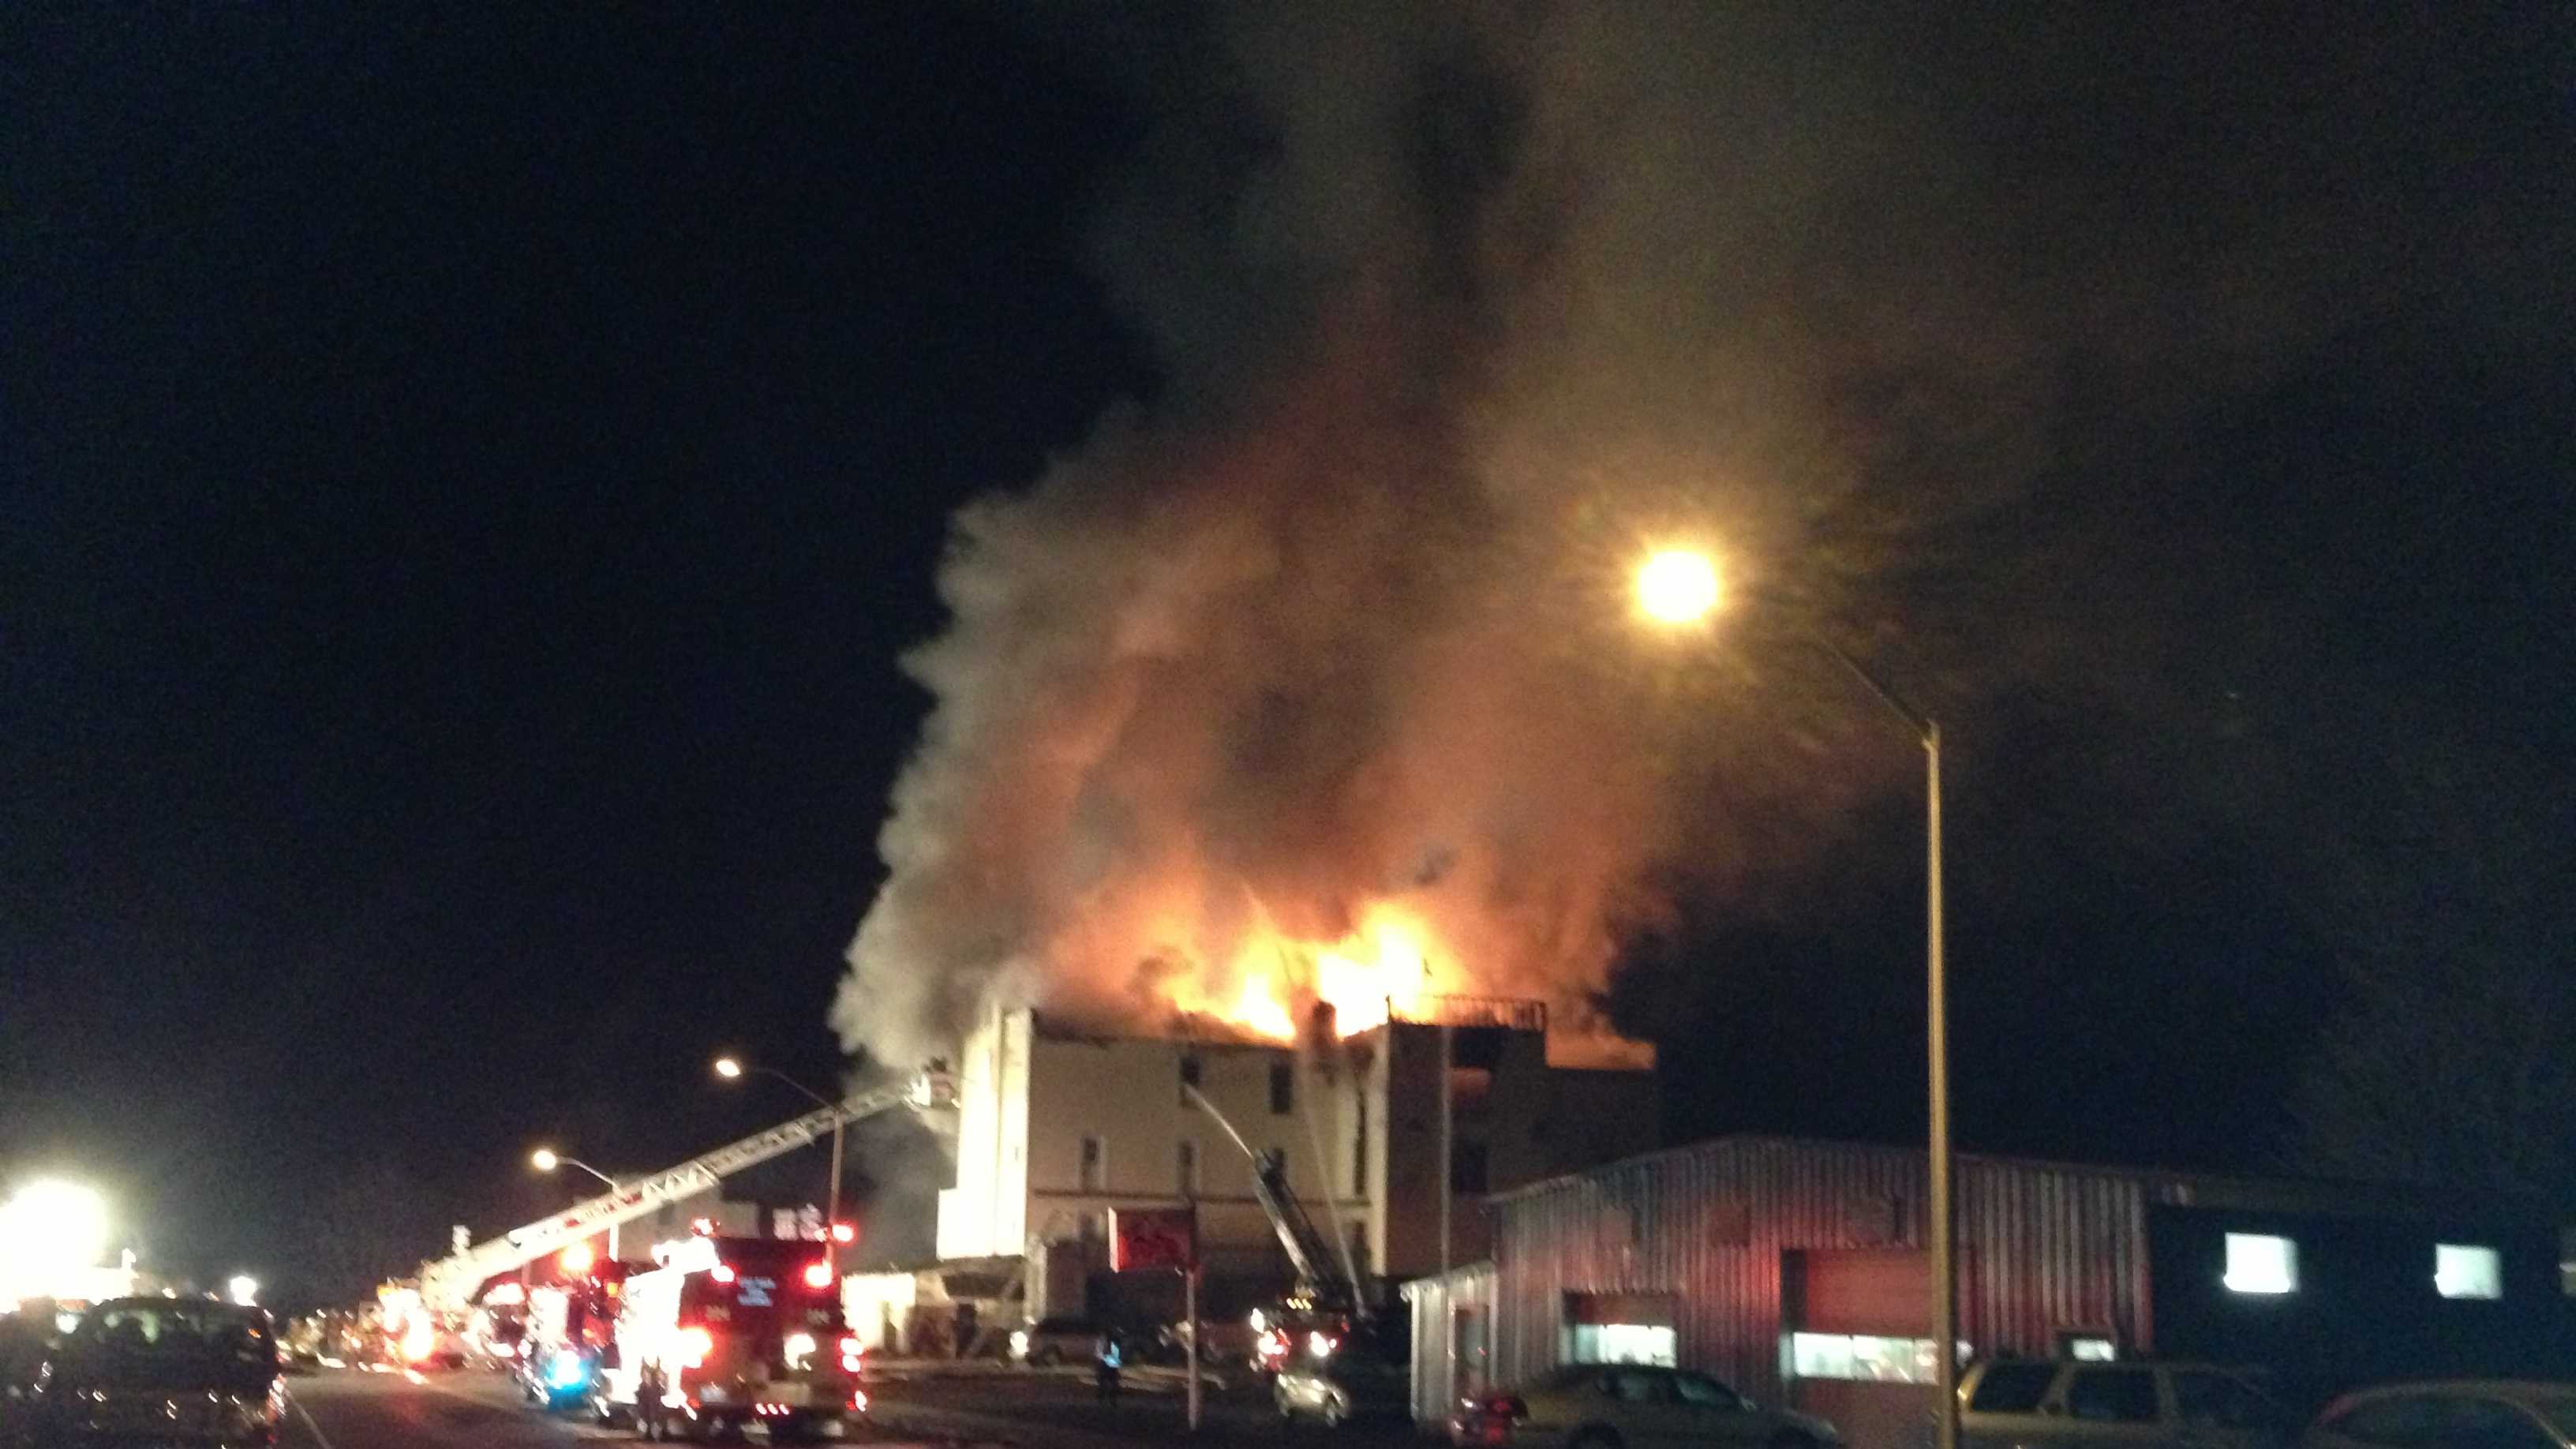 04-22-13 Fire breaks out at apartment complex - img